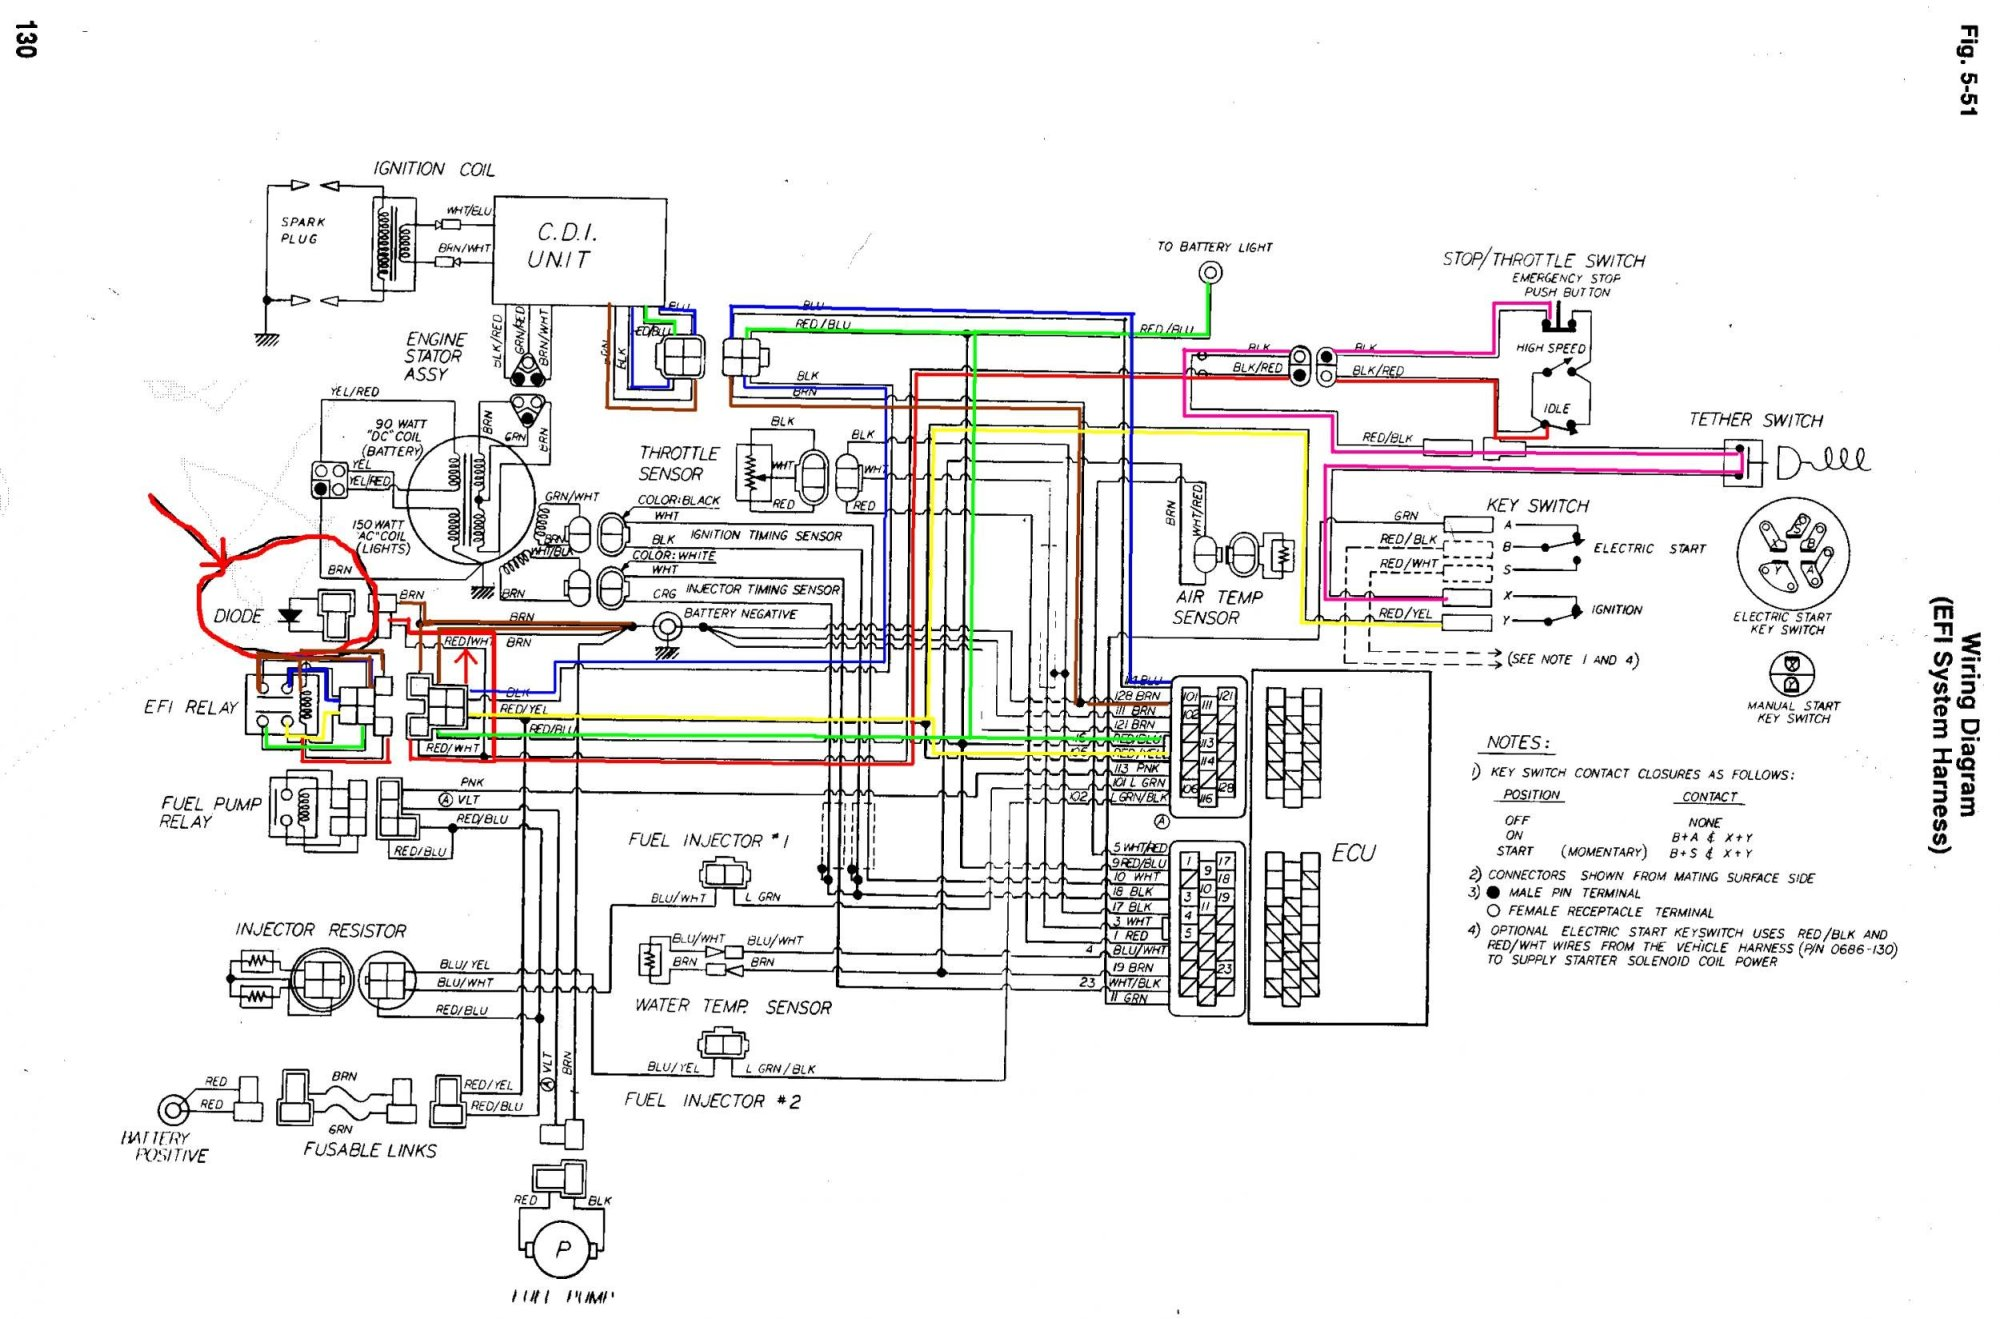 hight resolution of caterpillar messenger display wiring harness wiring diagram basic caterpillar messenger display wiring harness wiring diagramcaterpillar wiring